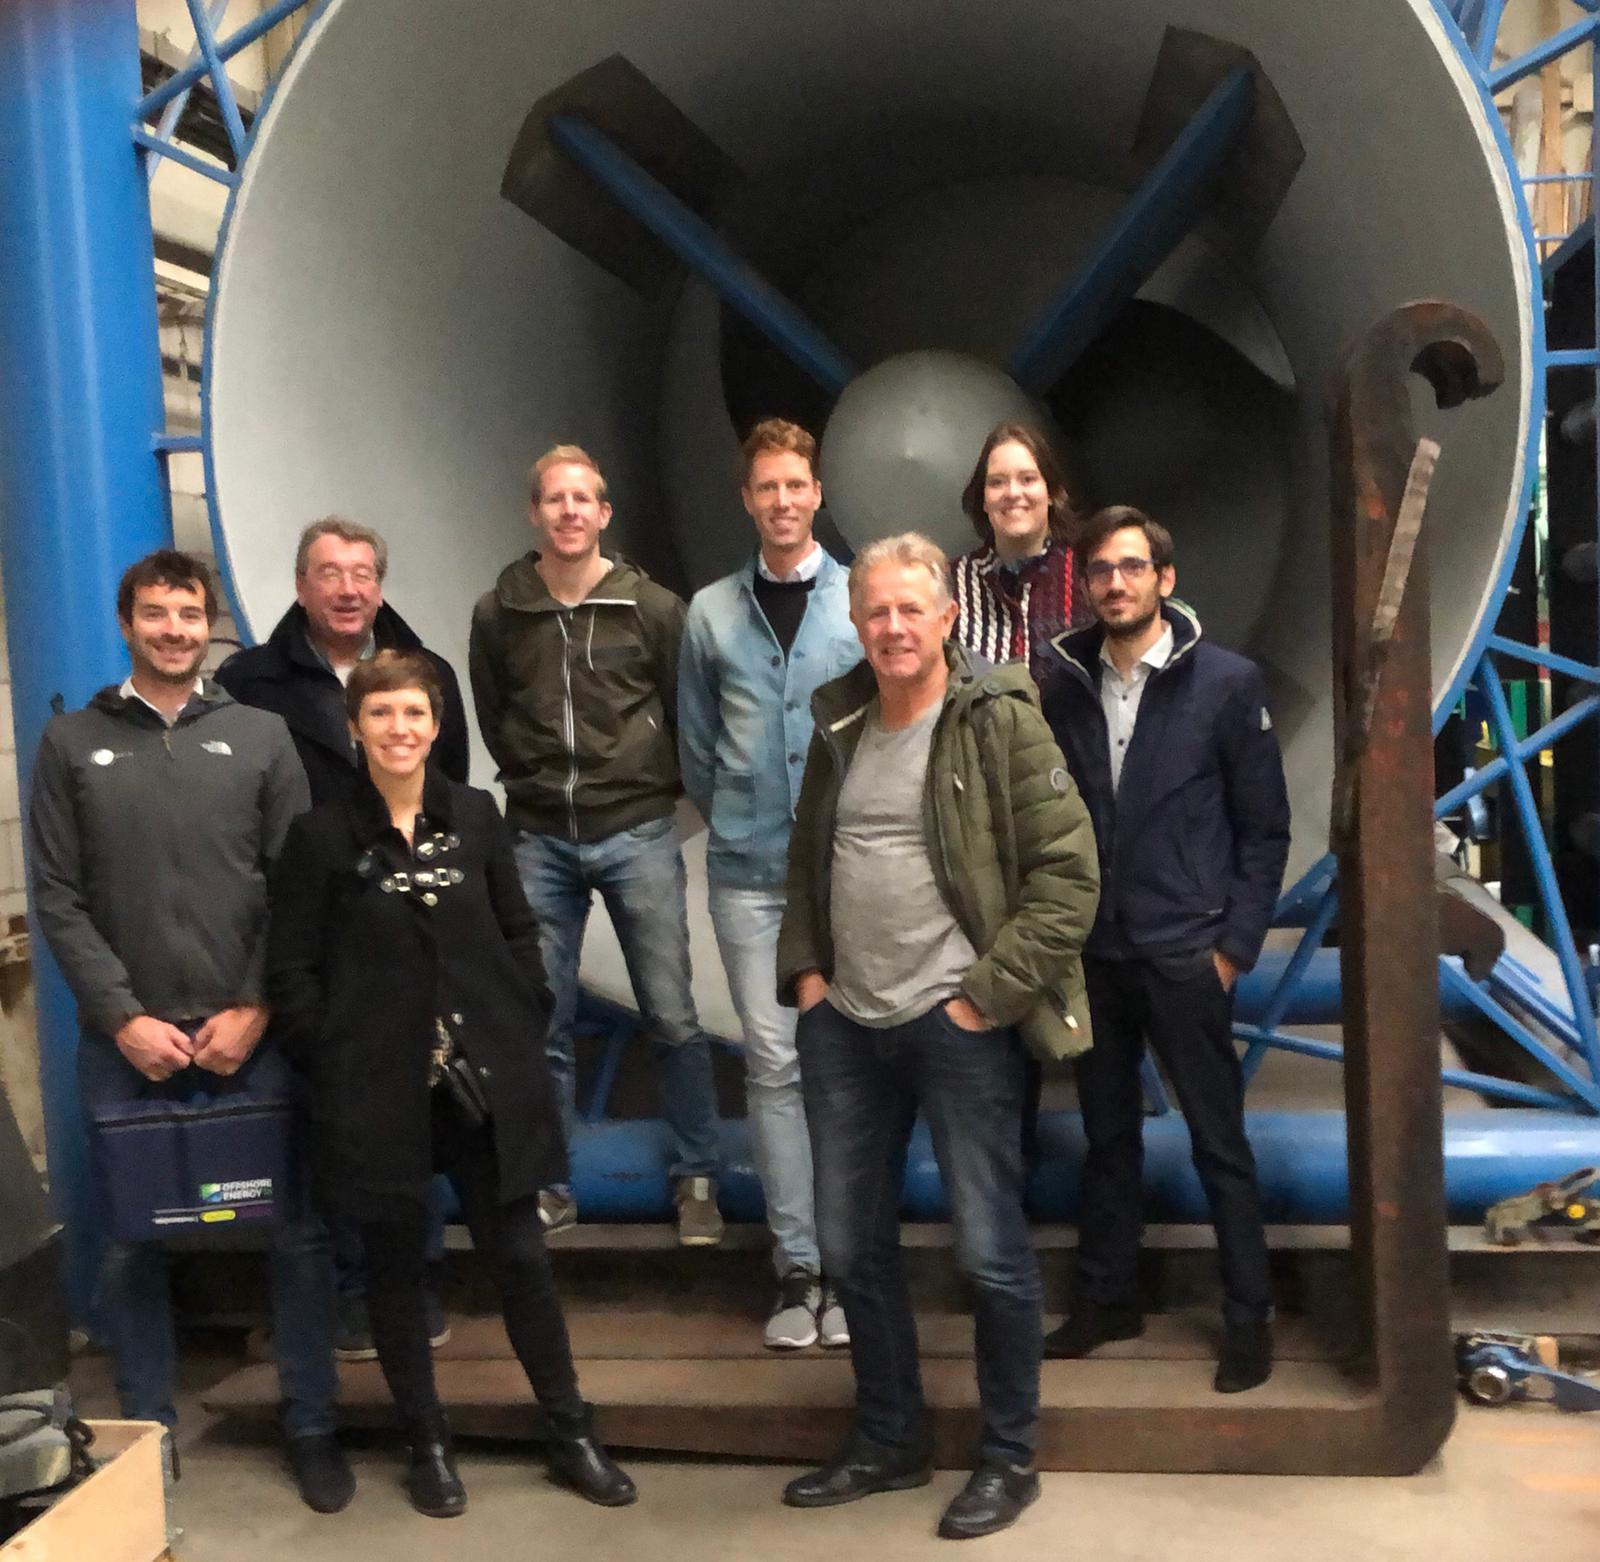 Project coordinator DMEC hosts a 3-day French mission on marine renewable energy to the Netherlands